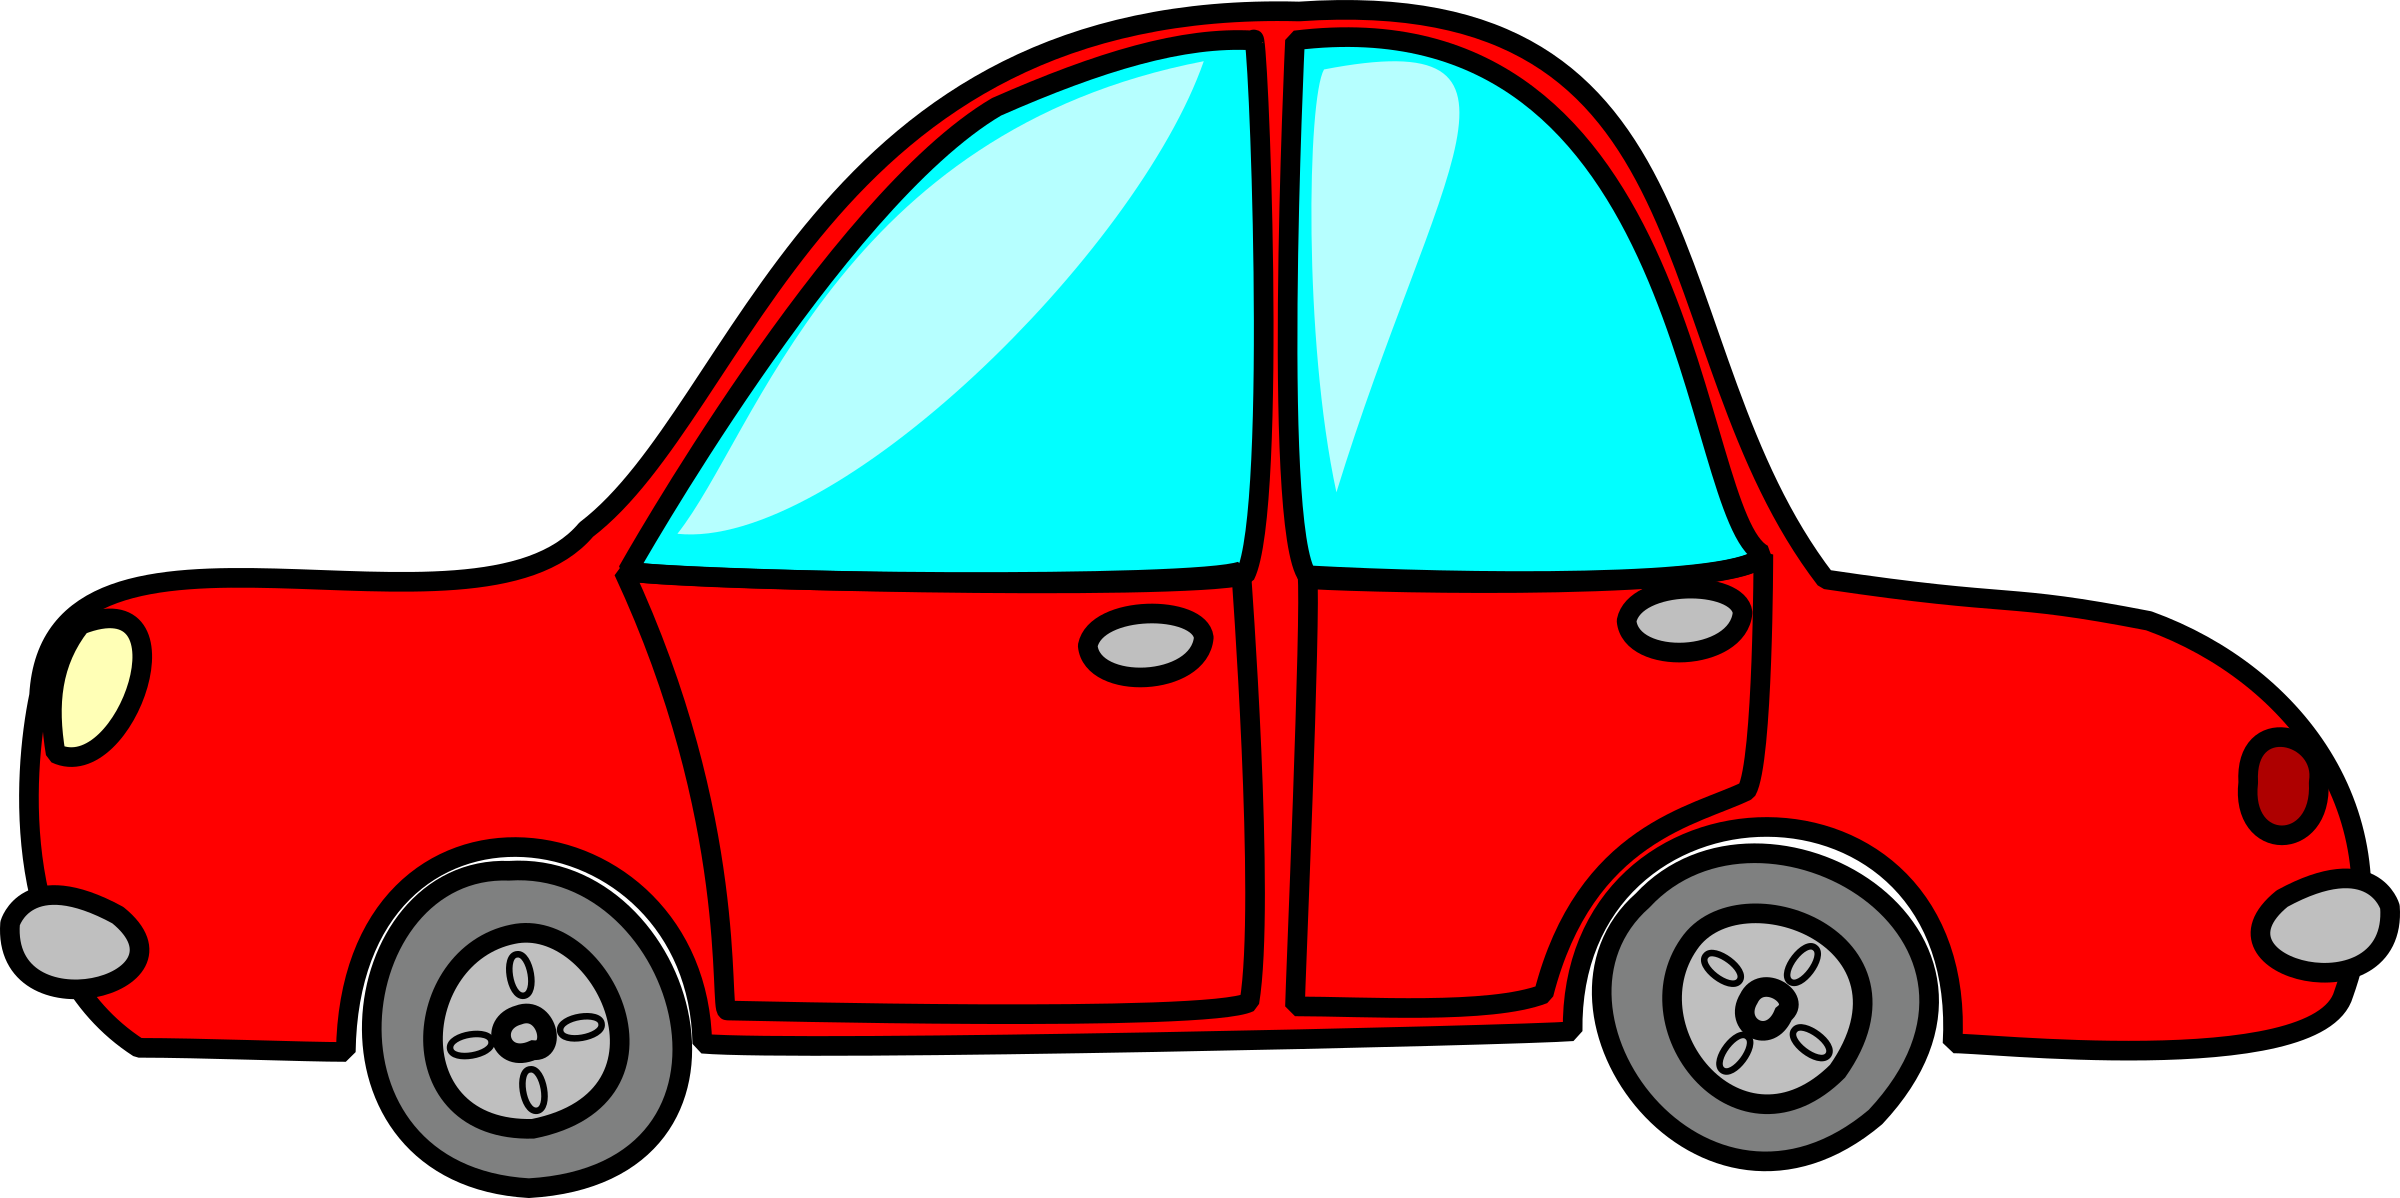 Blue clipart car clipart black and white Clipart - Toy car clipart black and white